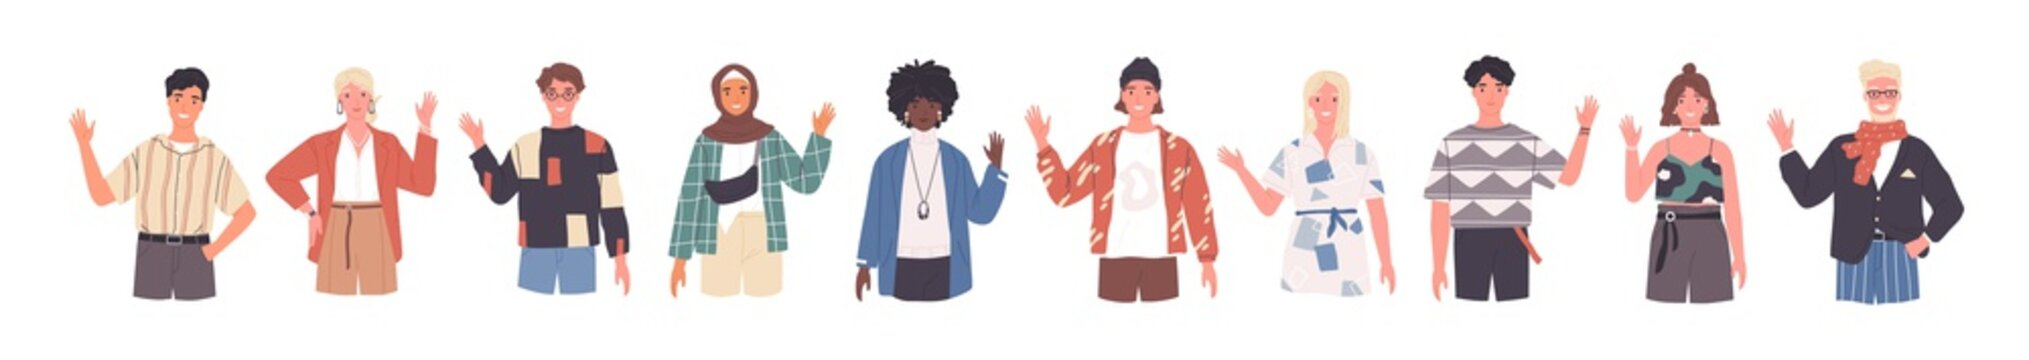 People greeting gesture flat vector illustrations set. Different nations representatives waving hand. Men, women in casual clothes, national costumes say hello. Male, female caucasian, african people.